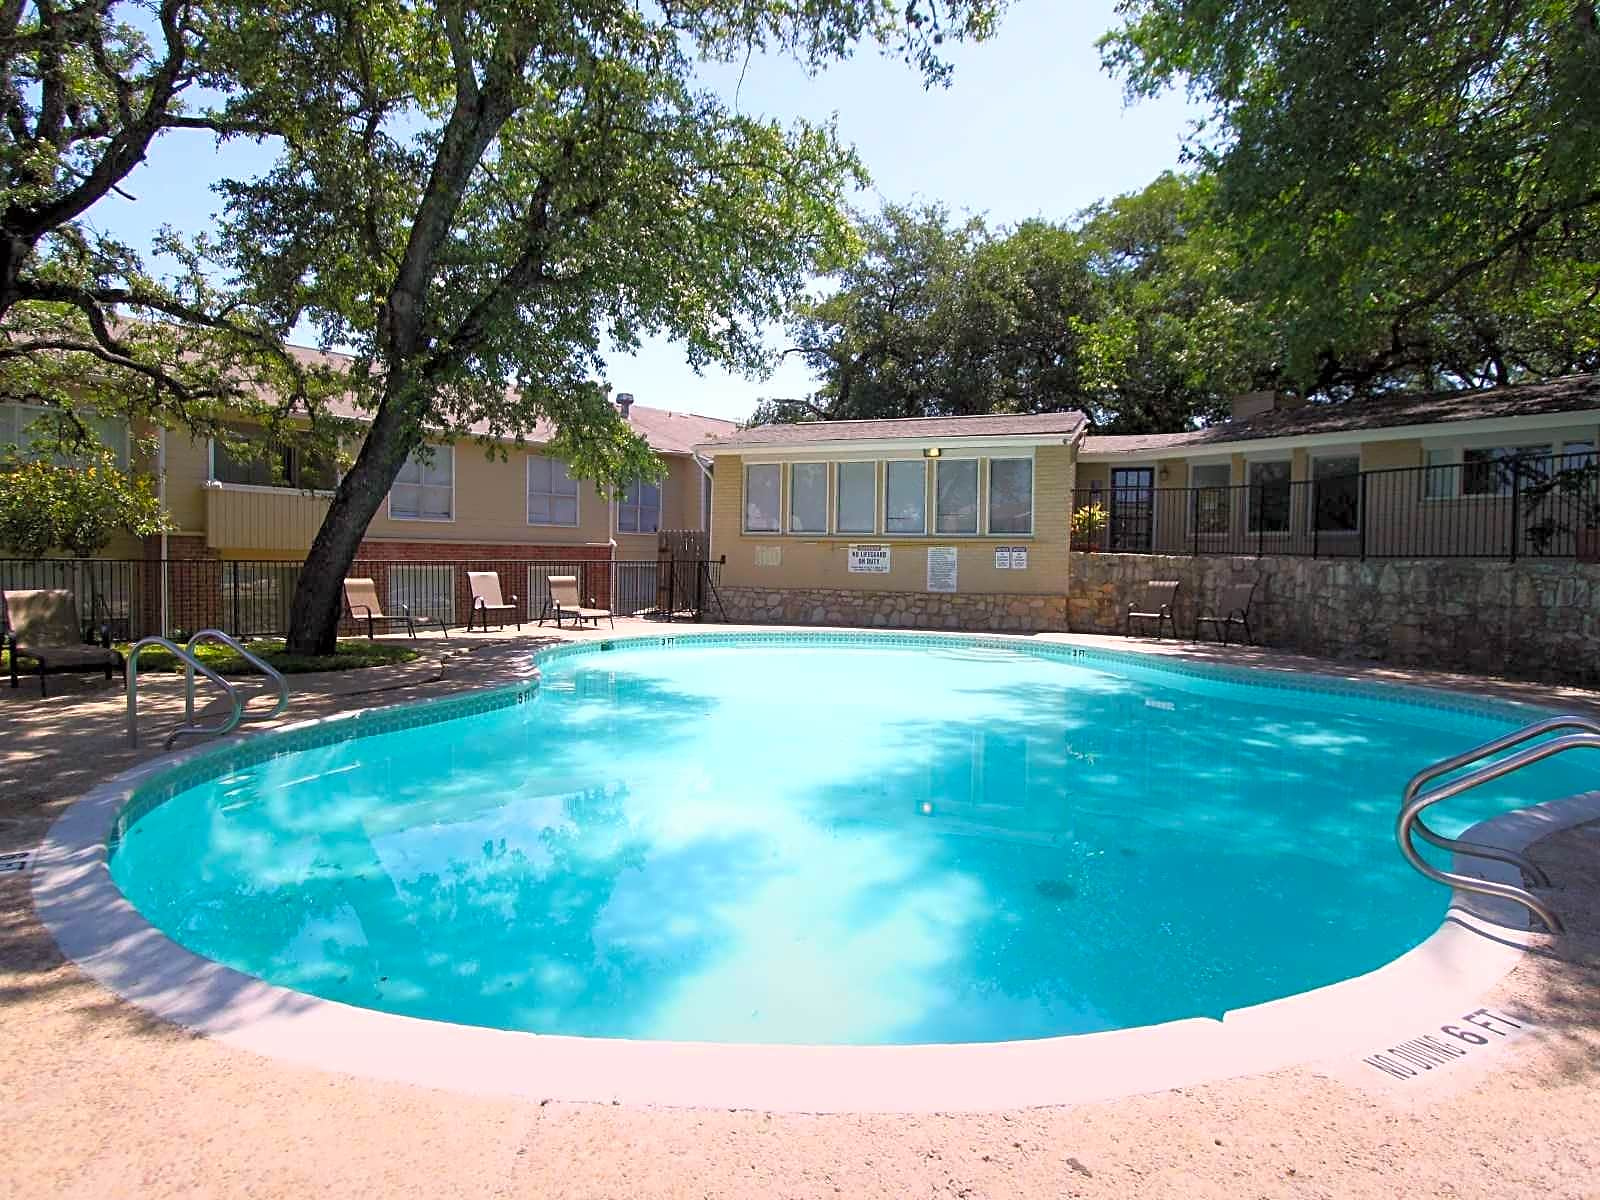 Photo: San Antonio Apartment for Rent - $523.00 / month; 1 Bd & 1 Ba